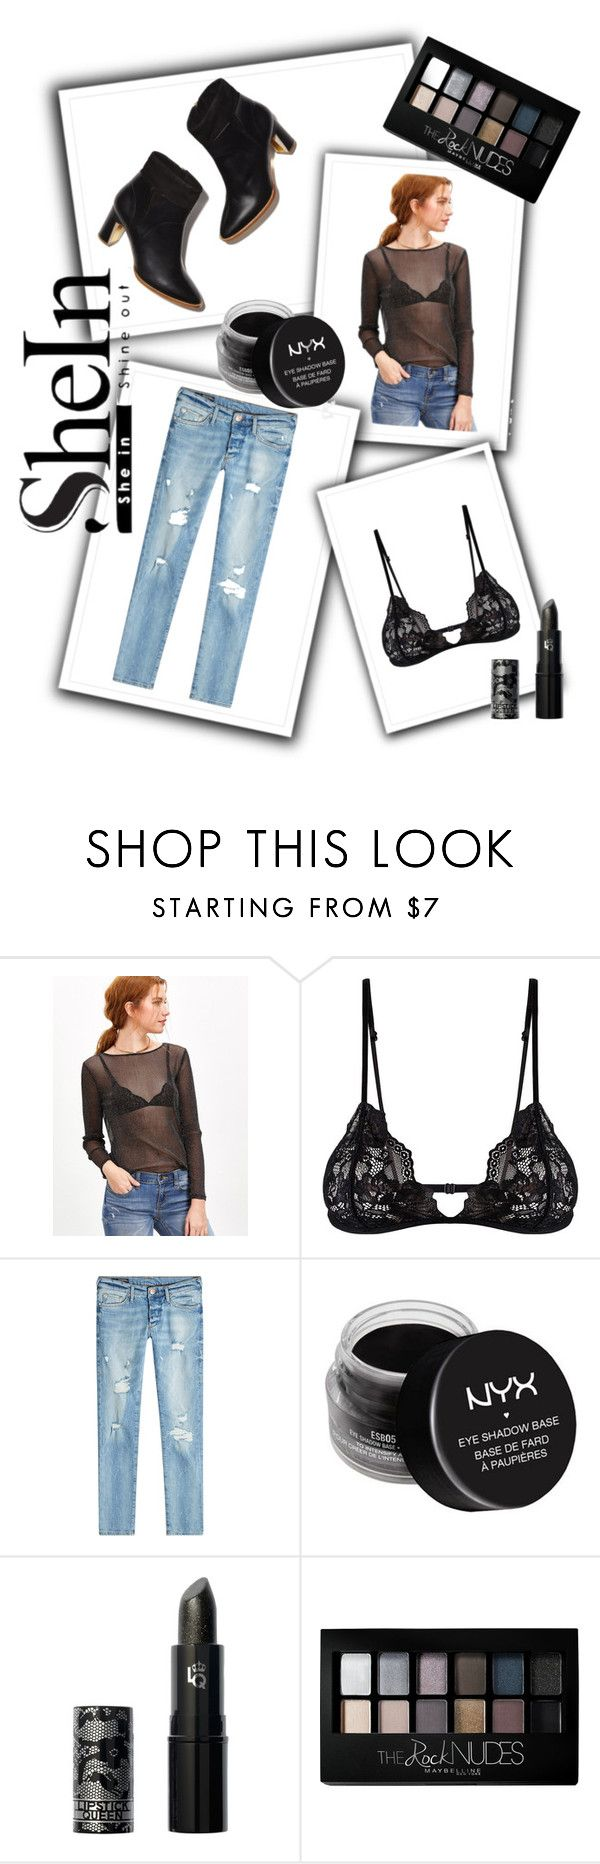 """""""Mesh."""" by emiam ❤ liked on Polyvore featuring Mosmann, True Religion, NYX, Lipstick Queen and Maybelline"""